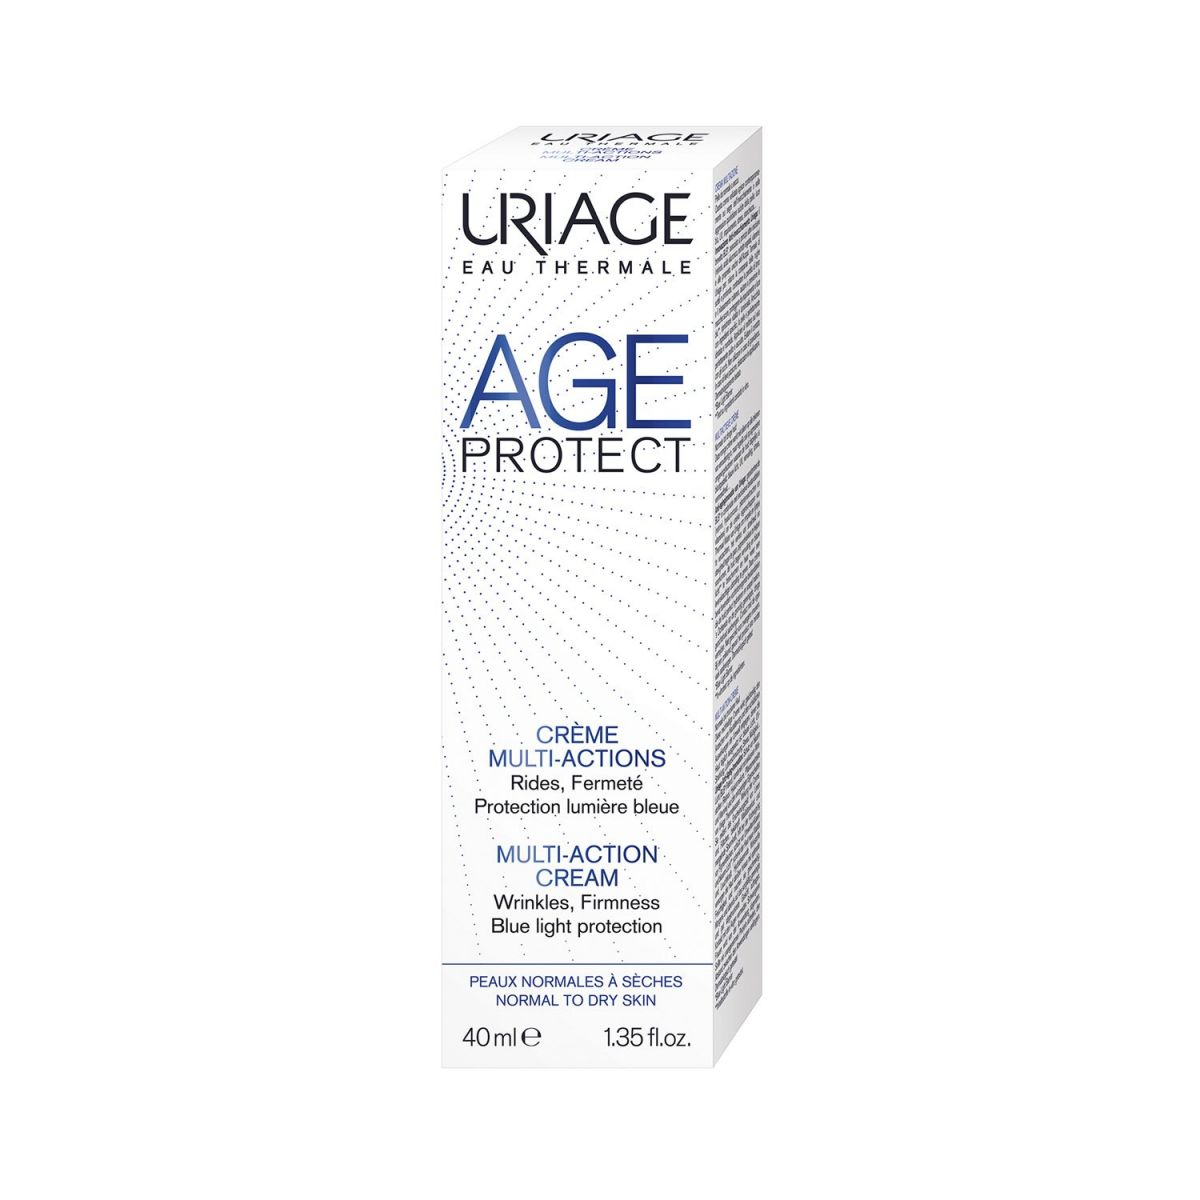 AGE PROTECT CREME MULTI ACTIONS 40ML - URIAGE